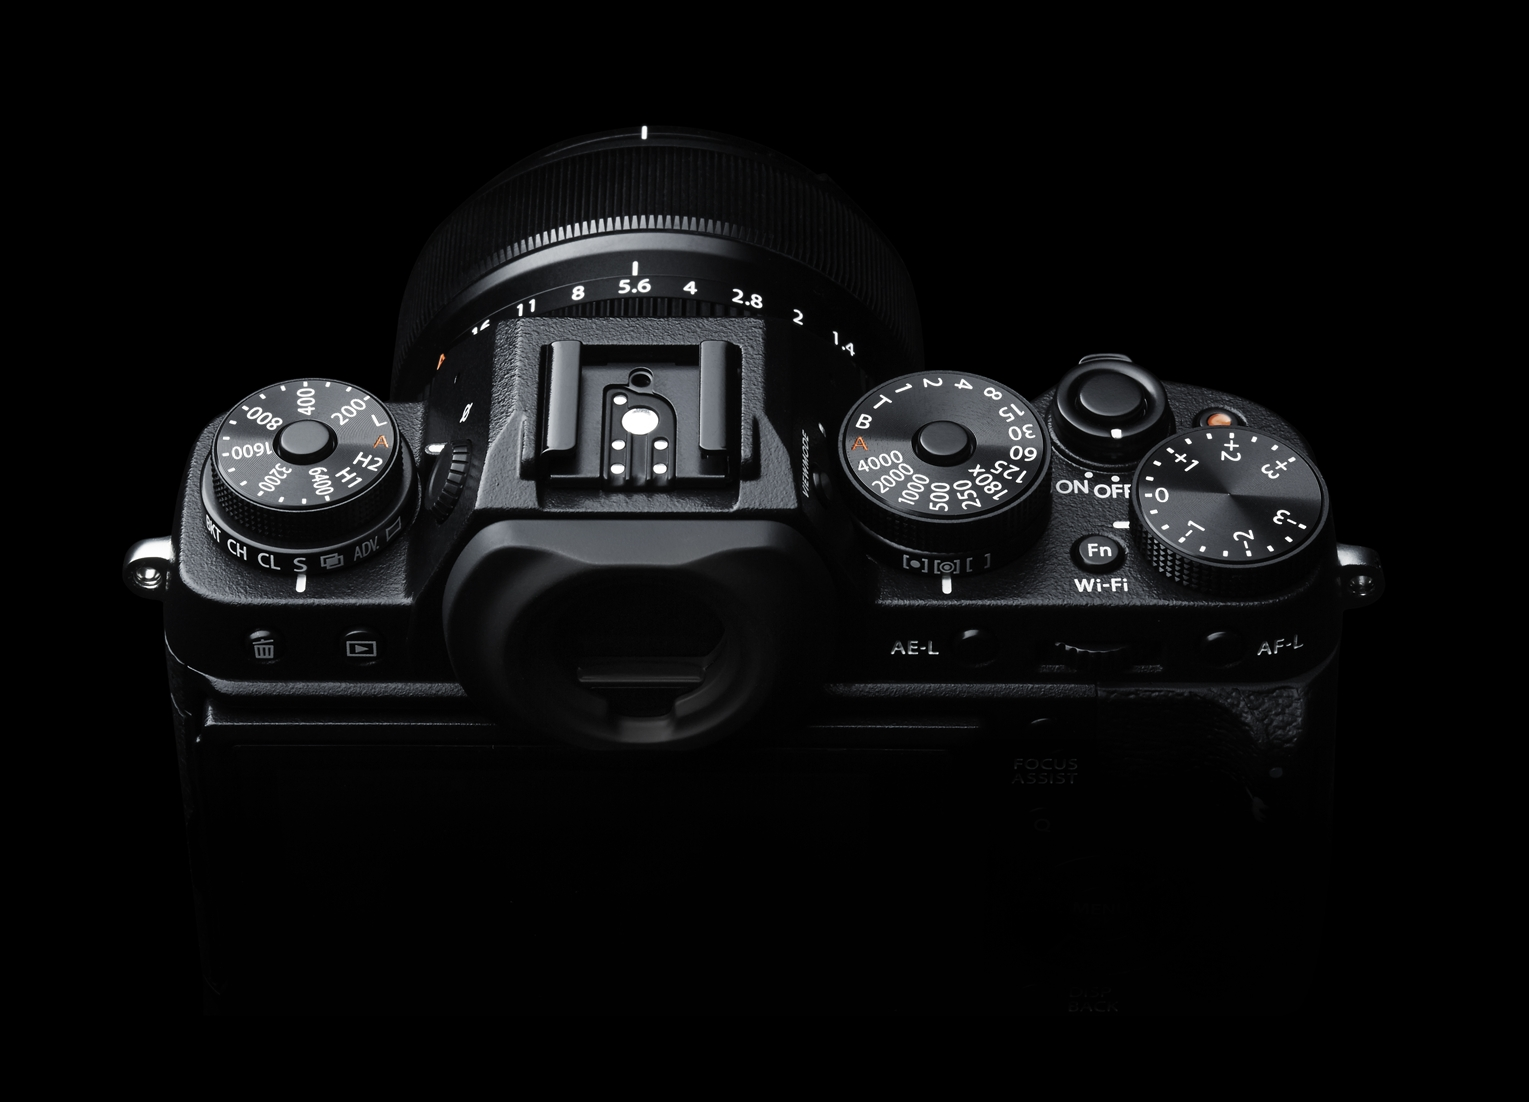 fujifilm-x-t2-camera-rumors